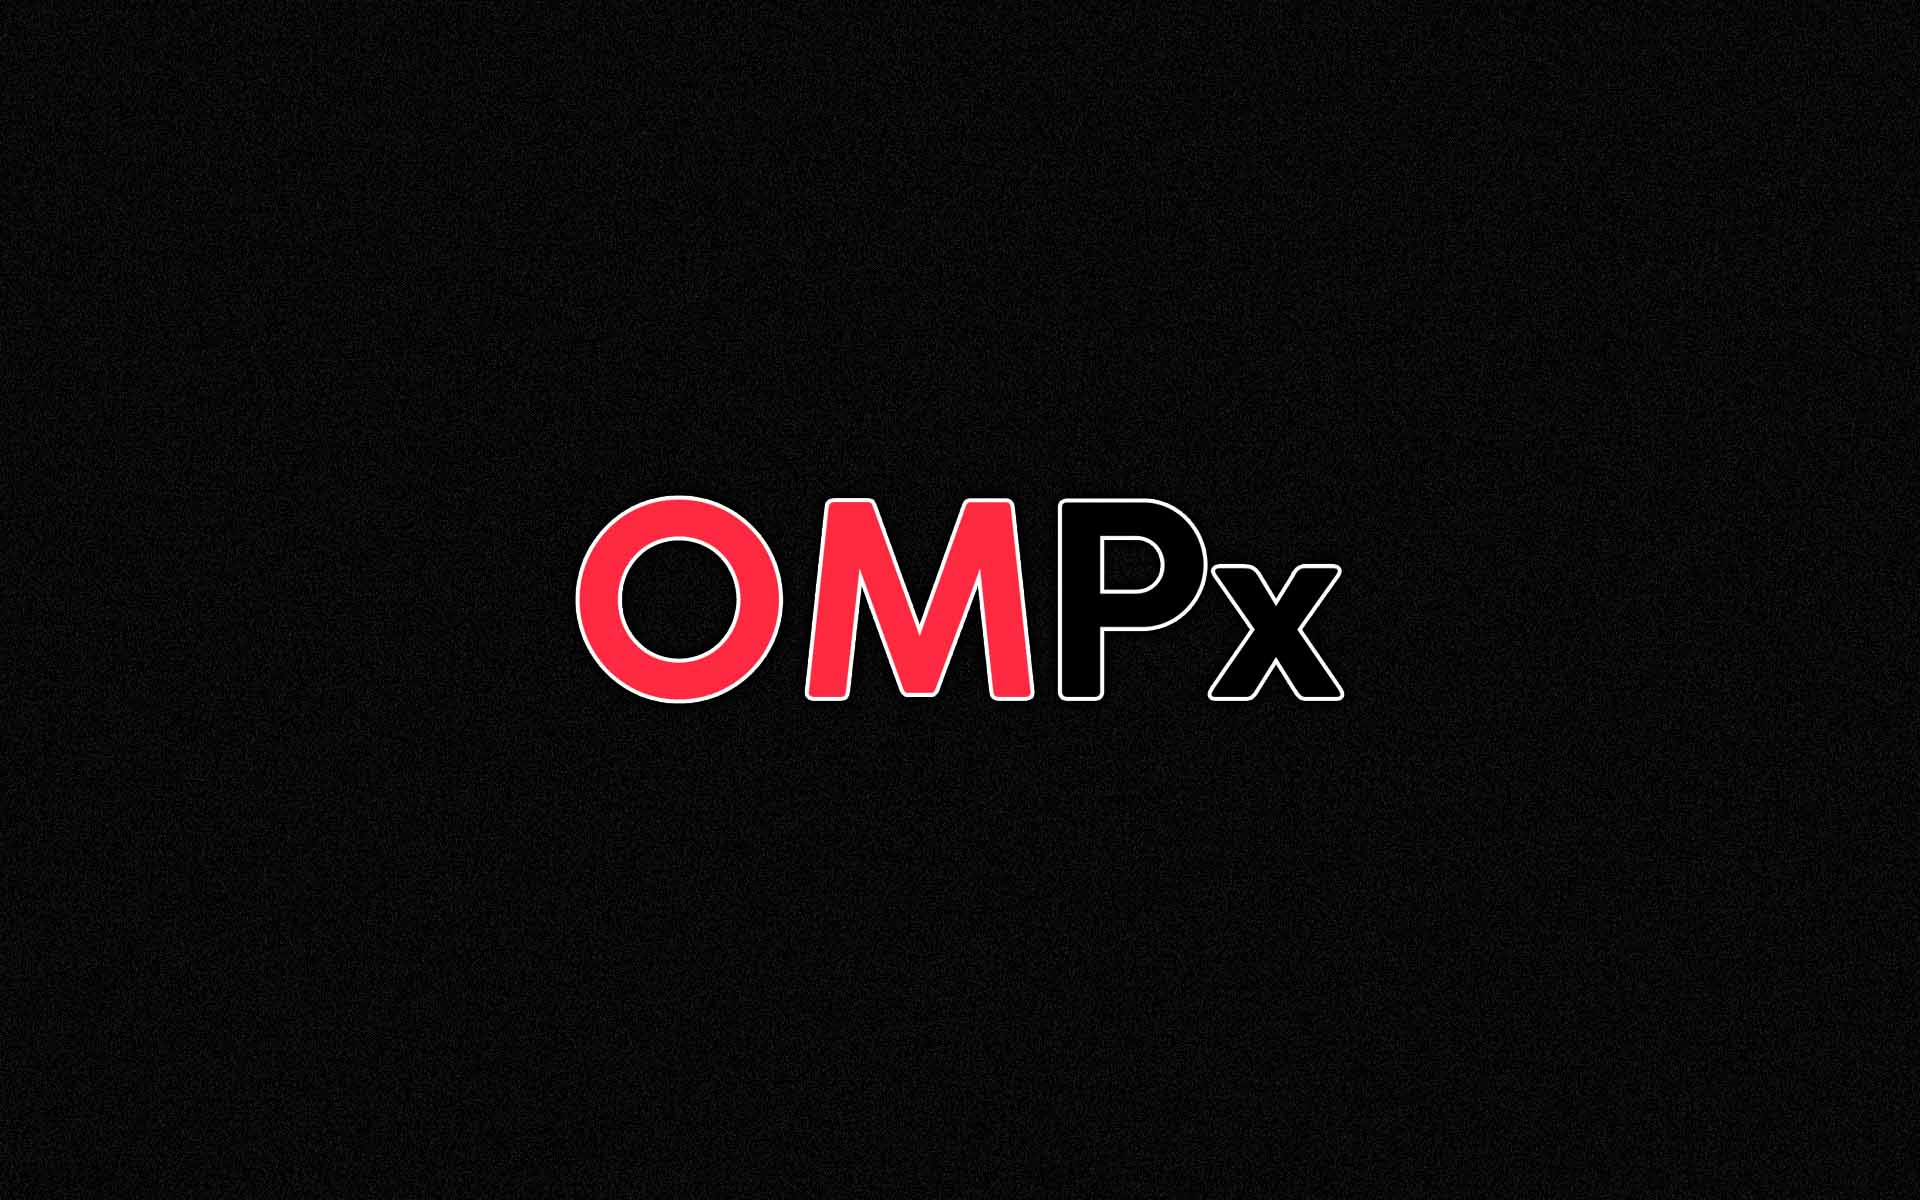 BREAKING NEWS: OMPx Game Announces Limited Supply of Playground Tokens Available for Free to Walk-In Players